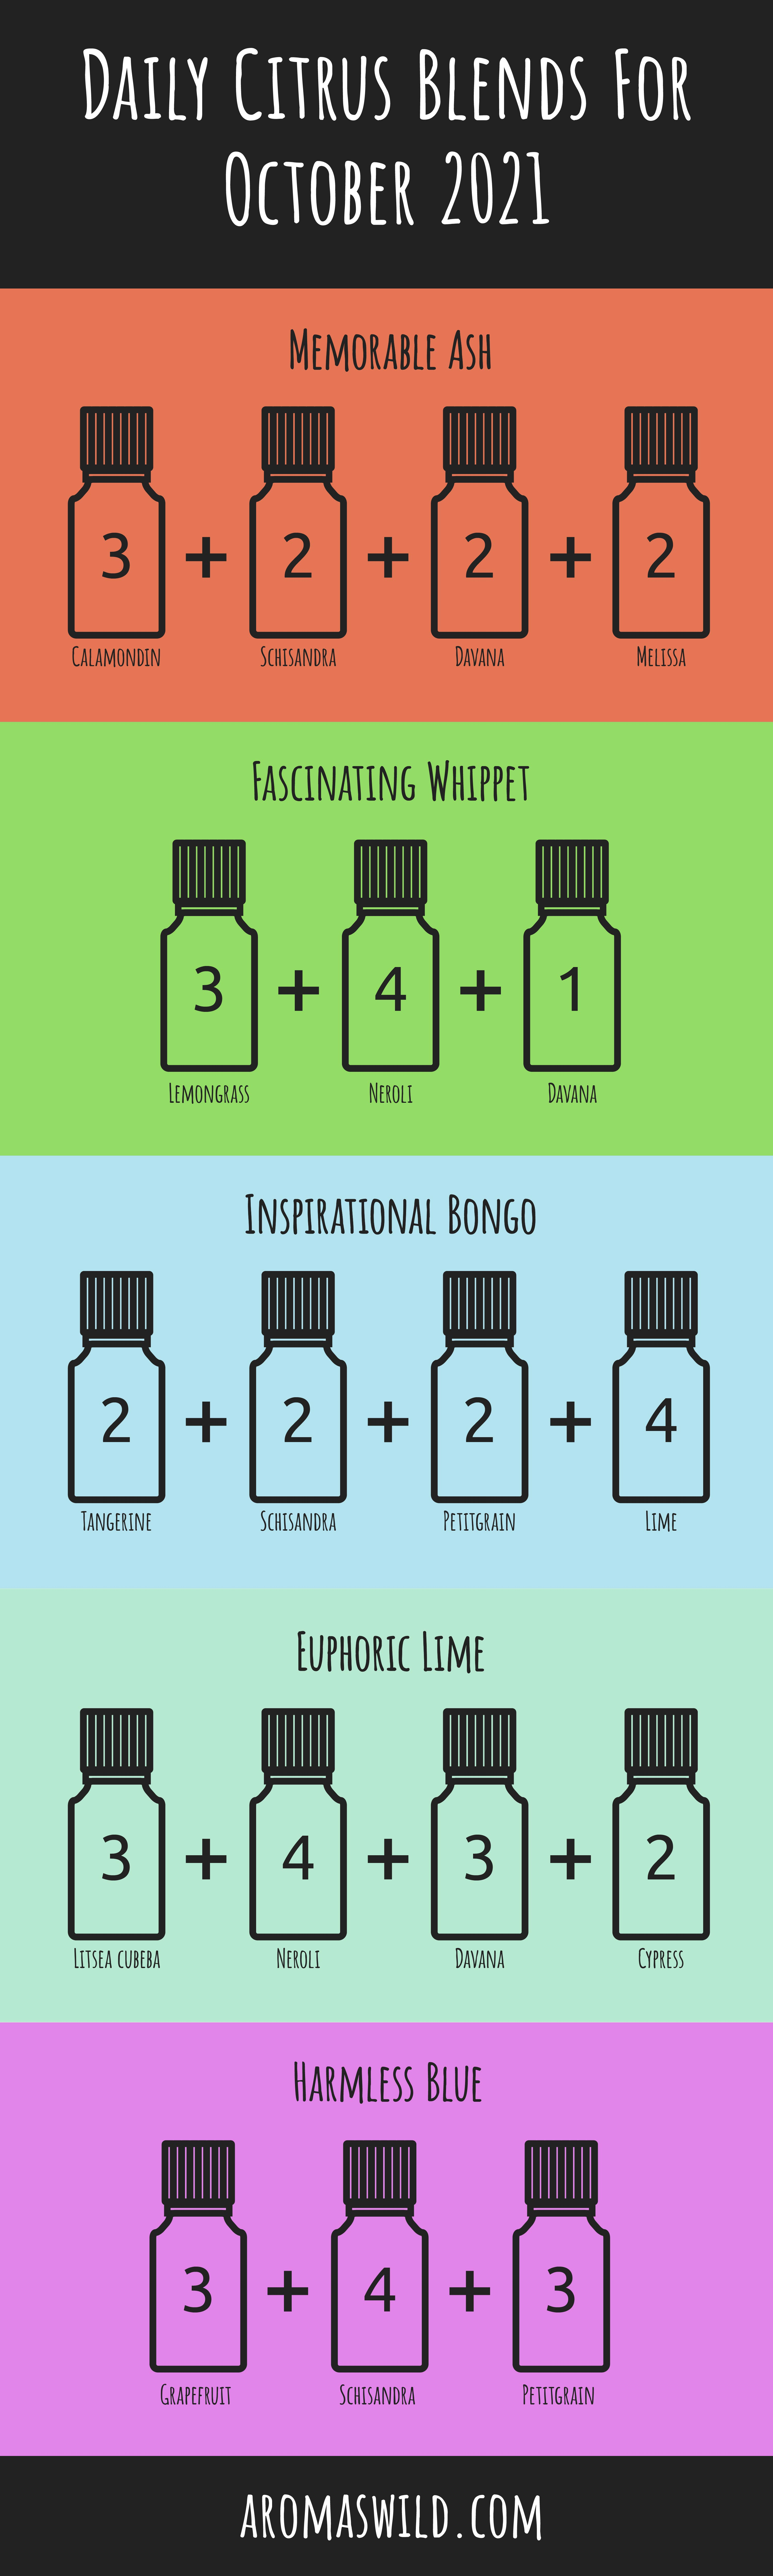 essential oil recipes – Daily Citrus Blends For 22 October 2021